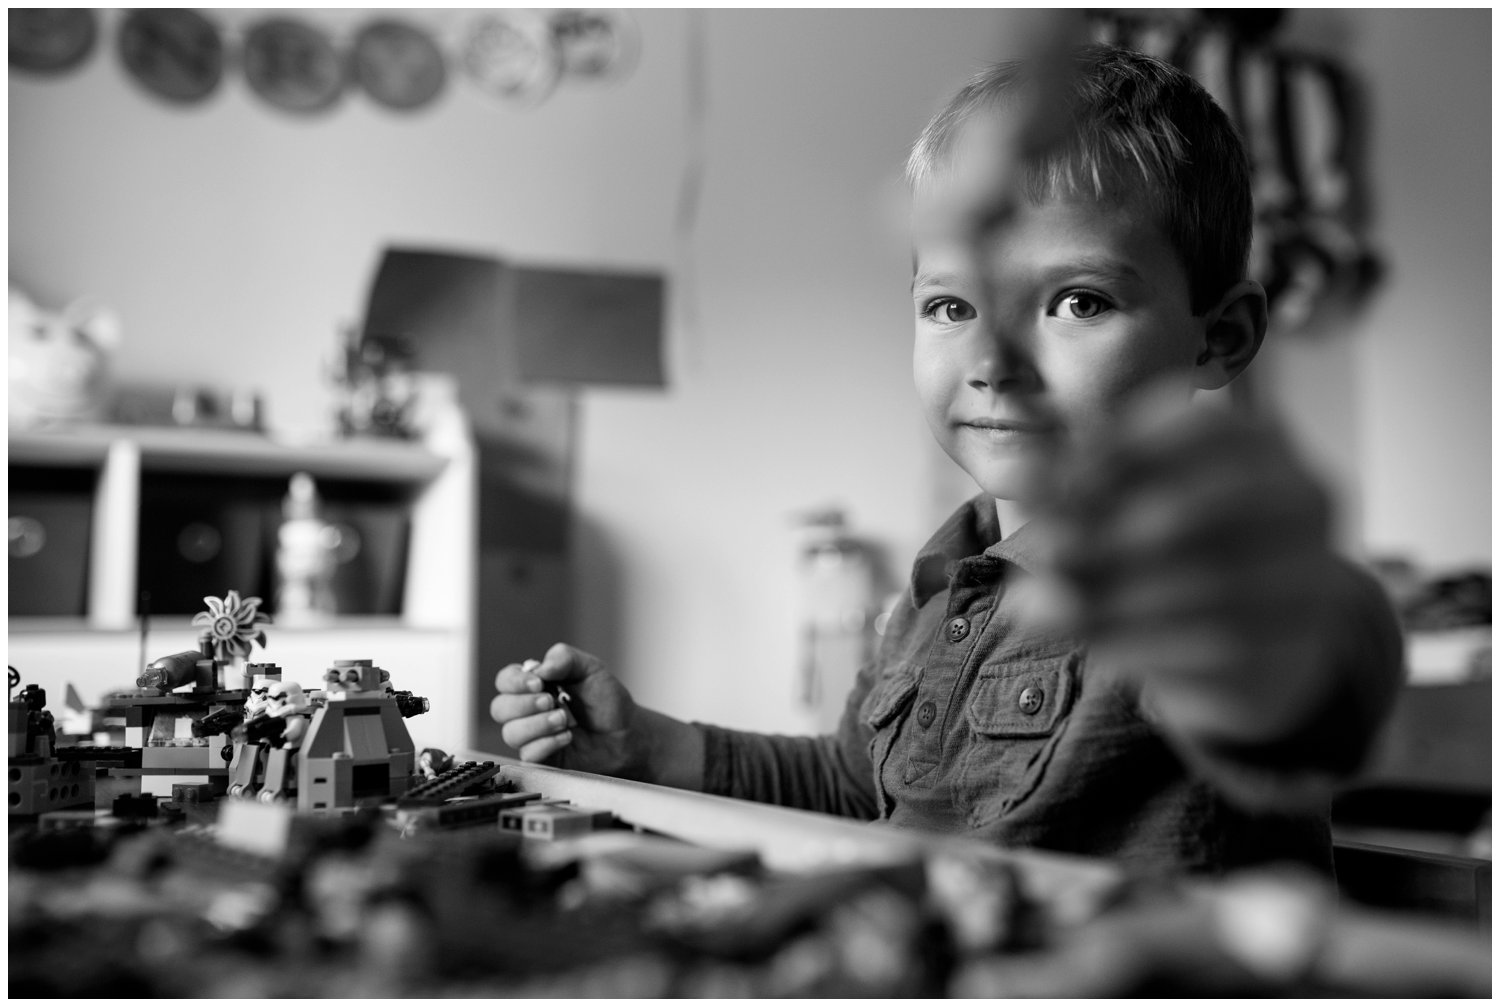 little boy plays legos in room